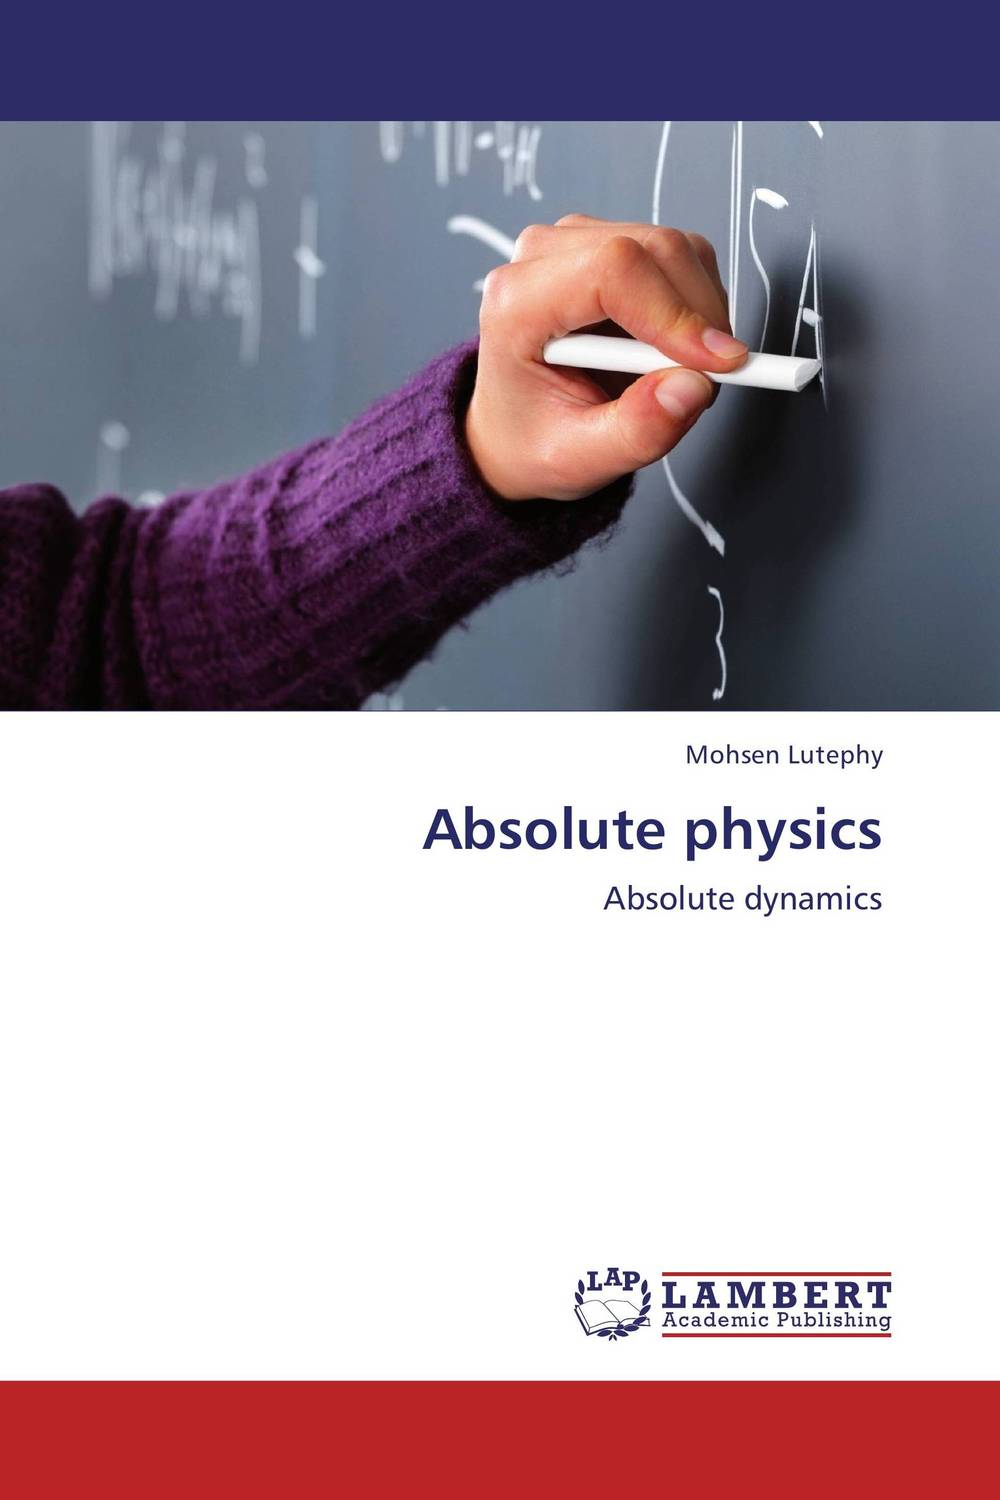 Absolute physics